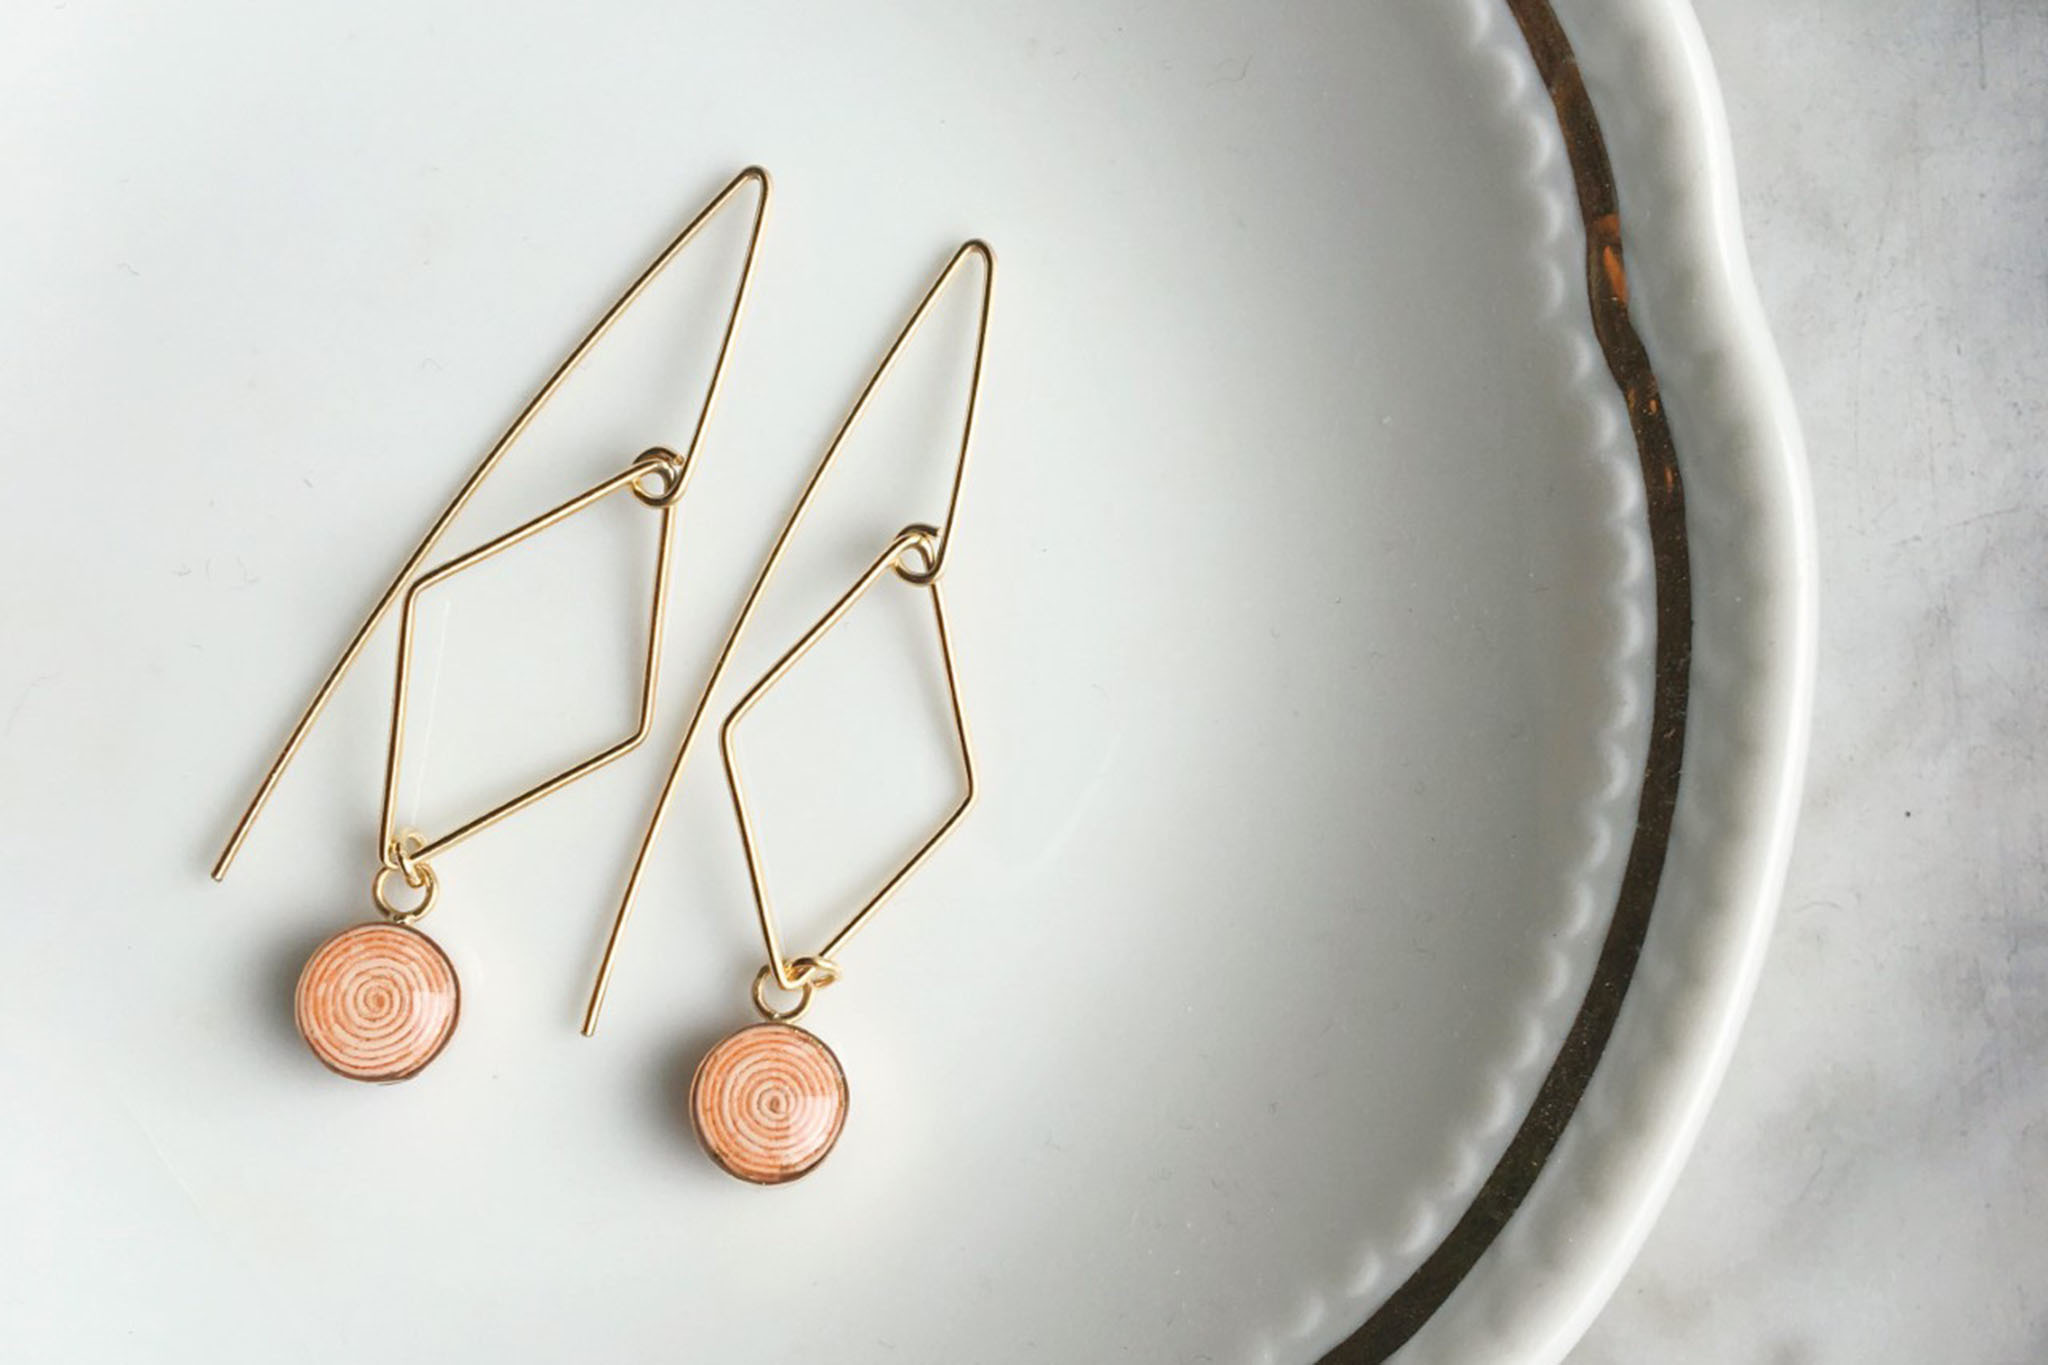 Gold-filled wire earrings and necklace from Blossom and Shine, $98